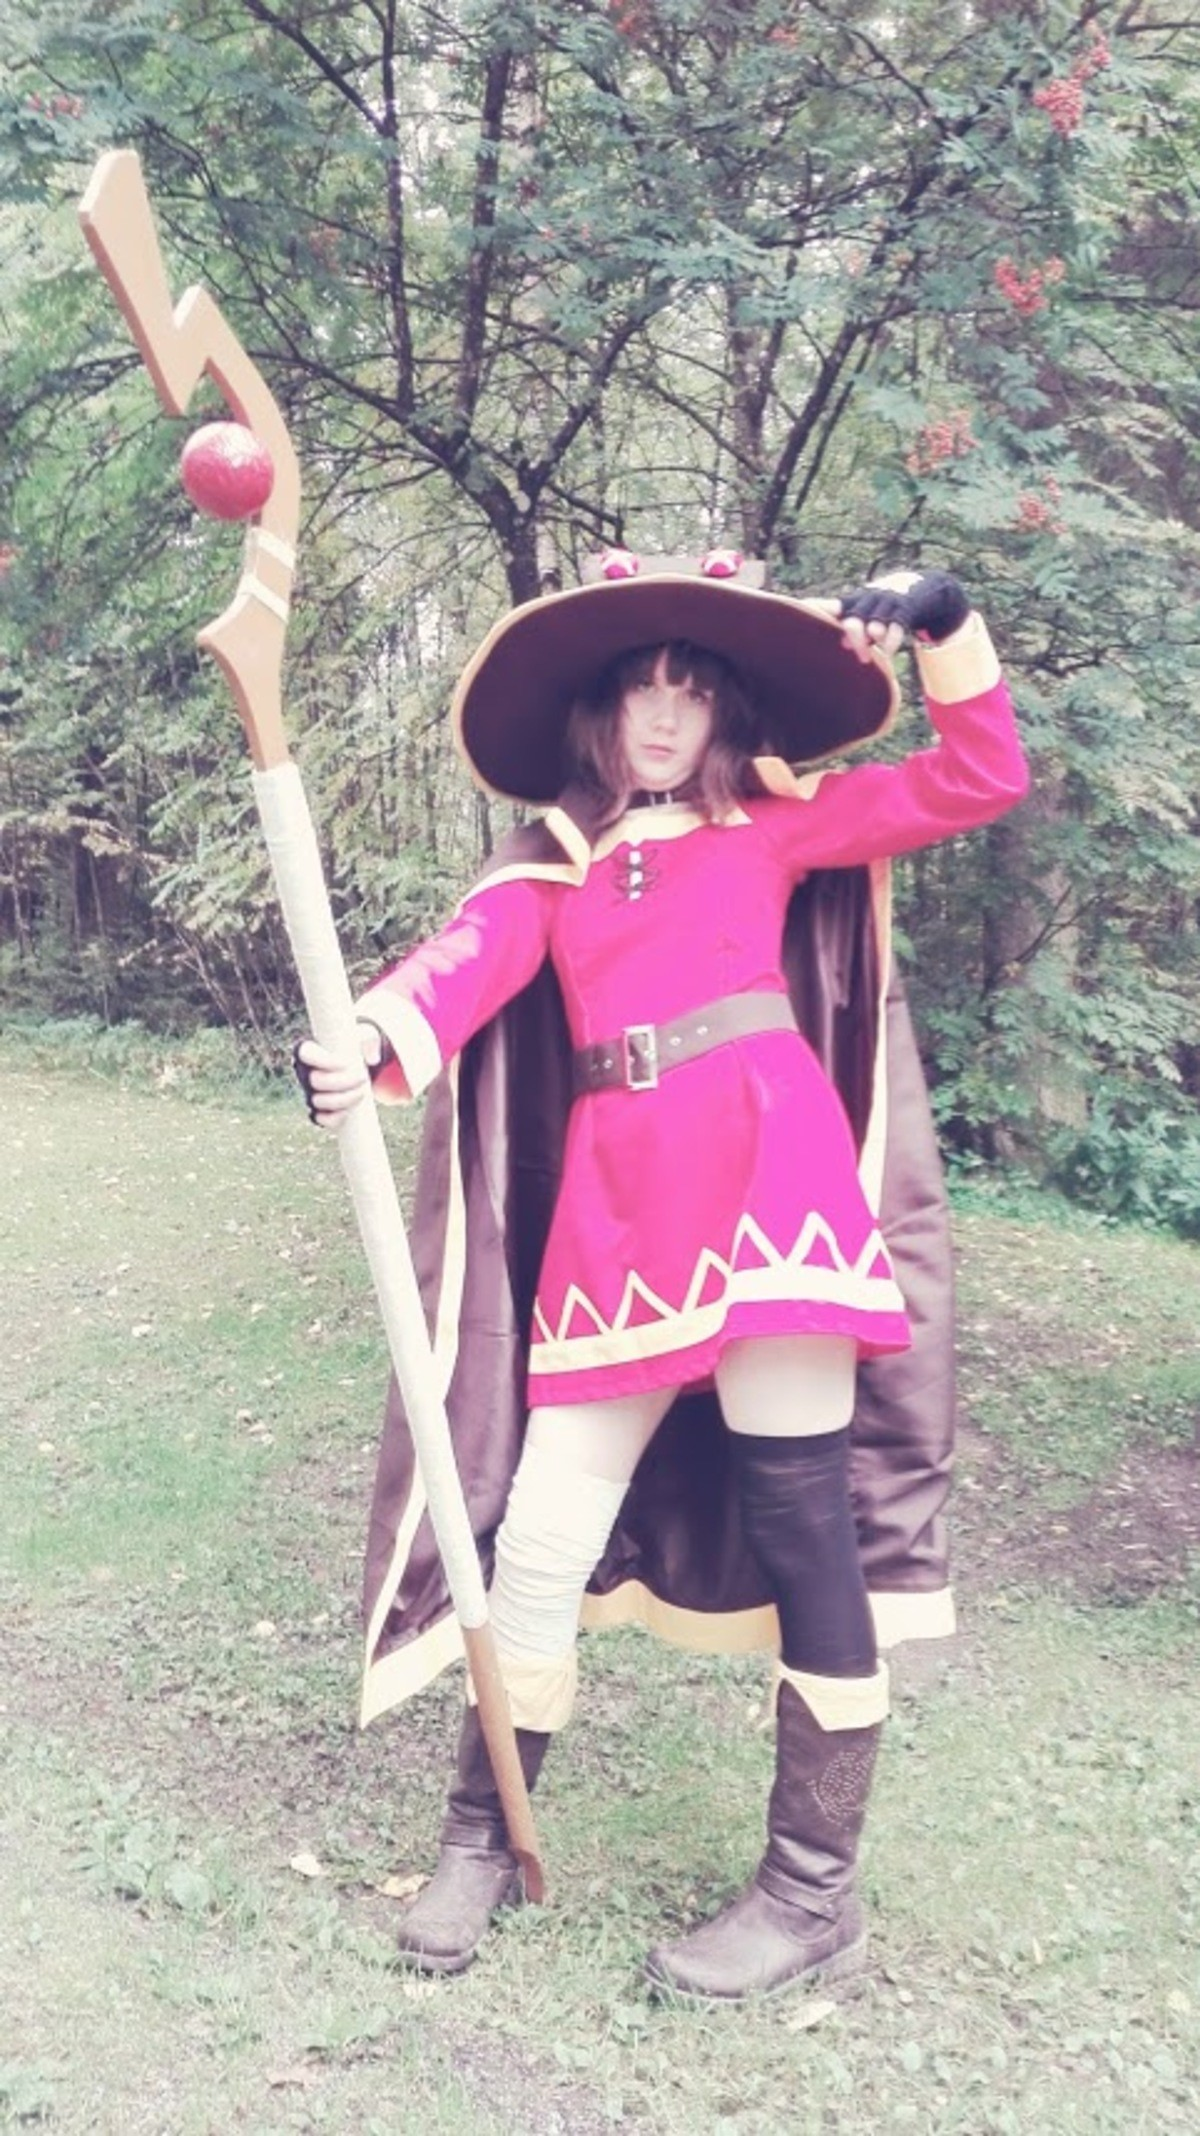 My Megumin cosplay. So I was cosplaying Megumin this weekend, so I decided to post the pictures again. It was damn fun. Hope you guys enjoy the pictures! c:.. I made a thing